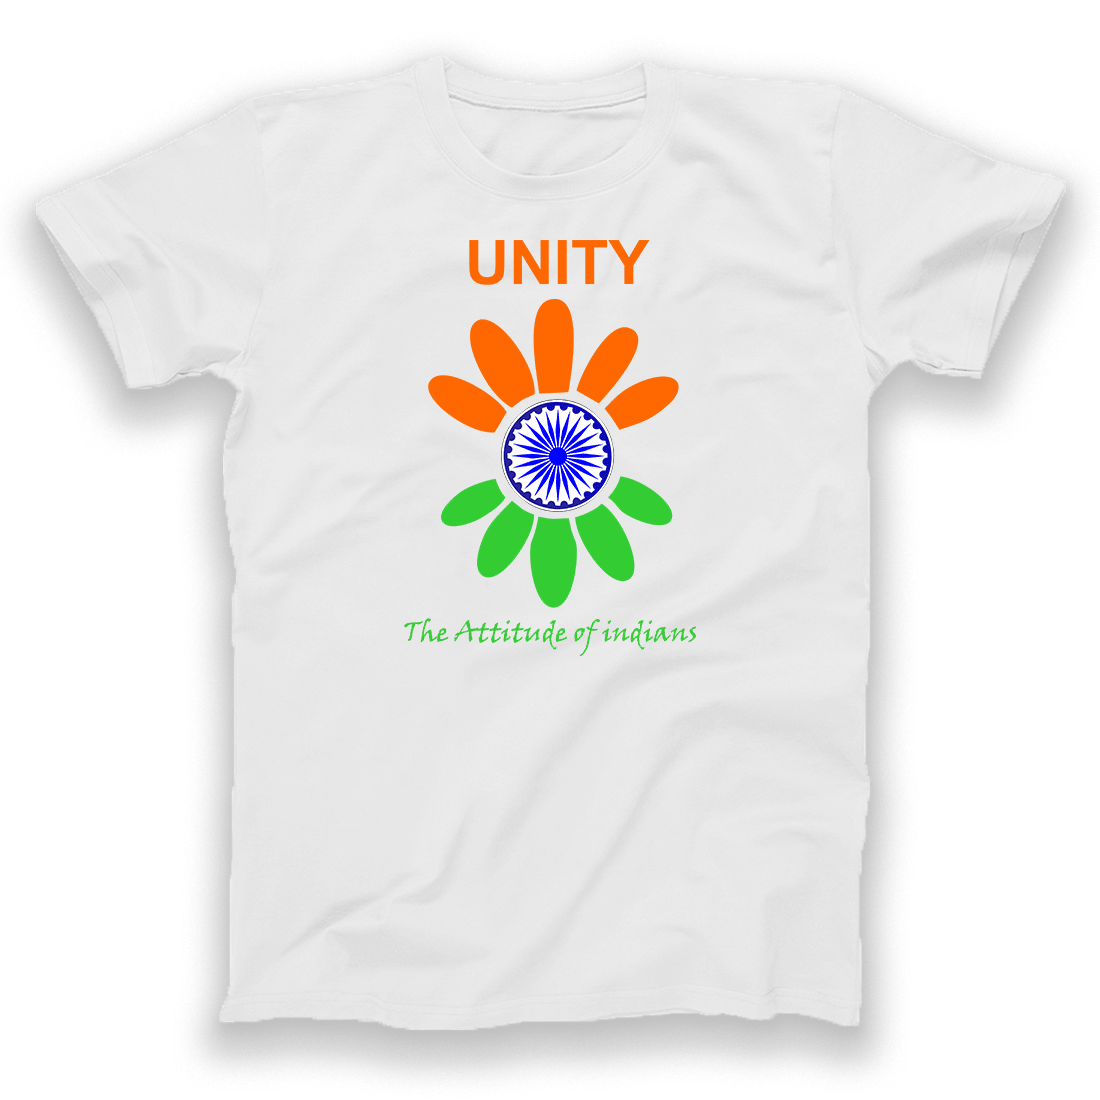 Unity-Attitude of Indians